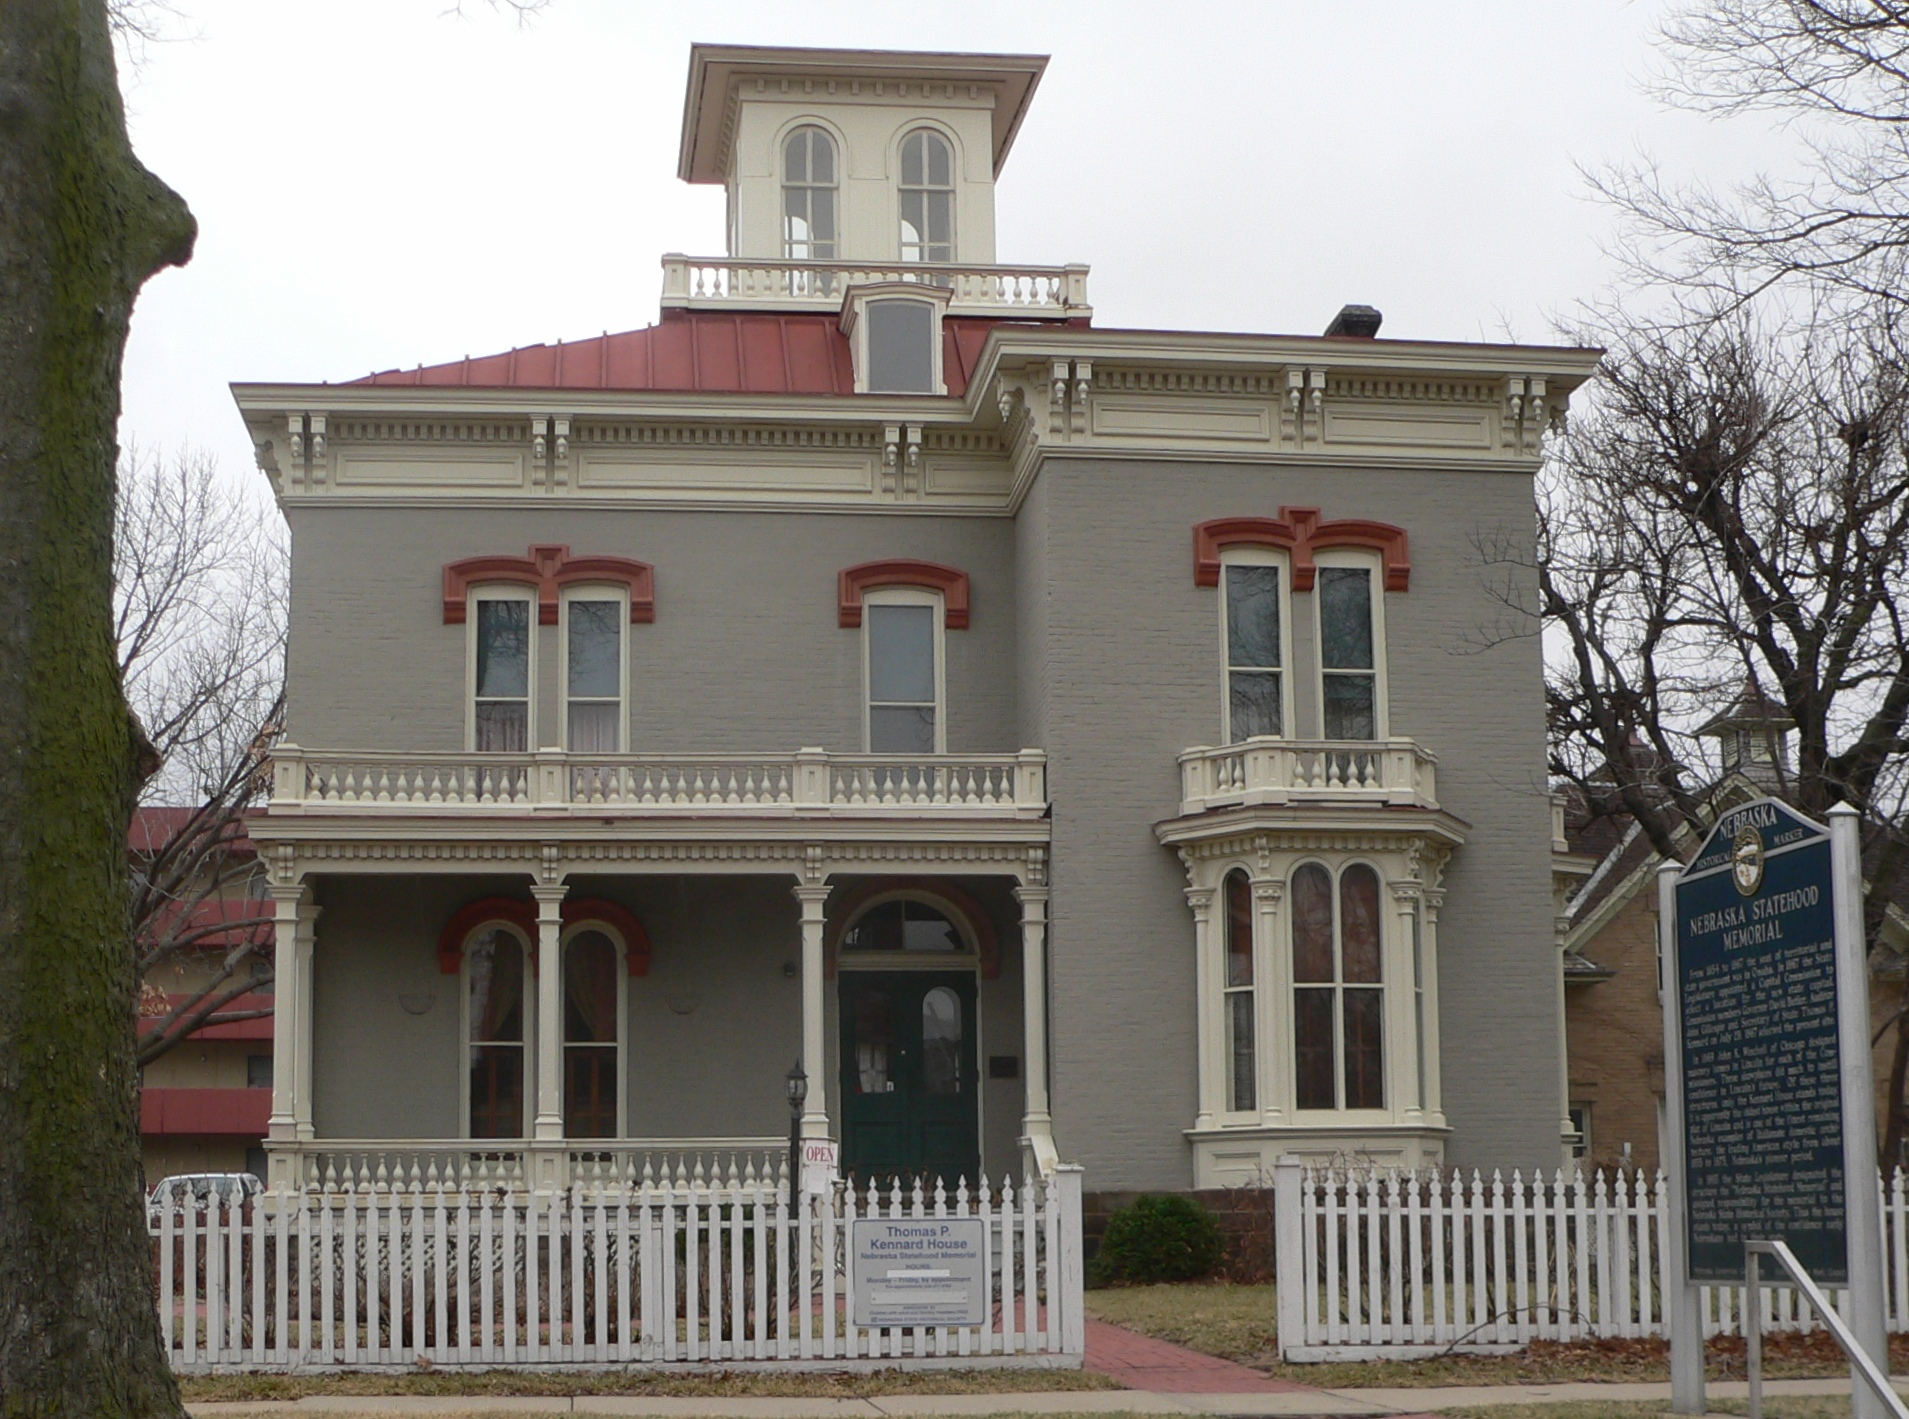 The Thomas P. Kennard House